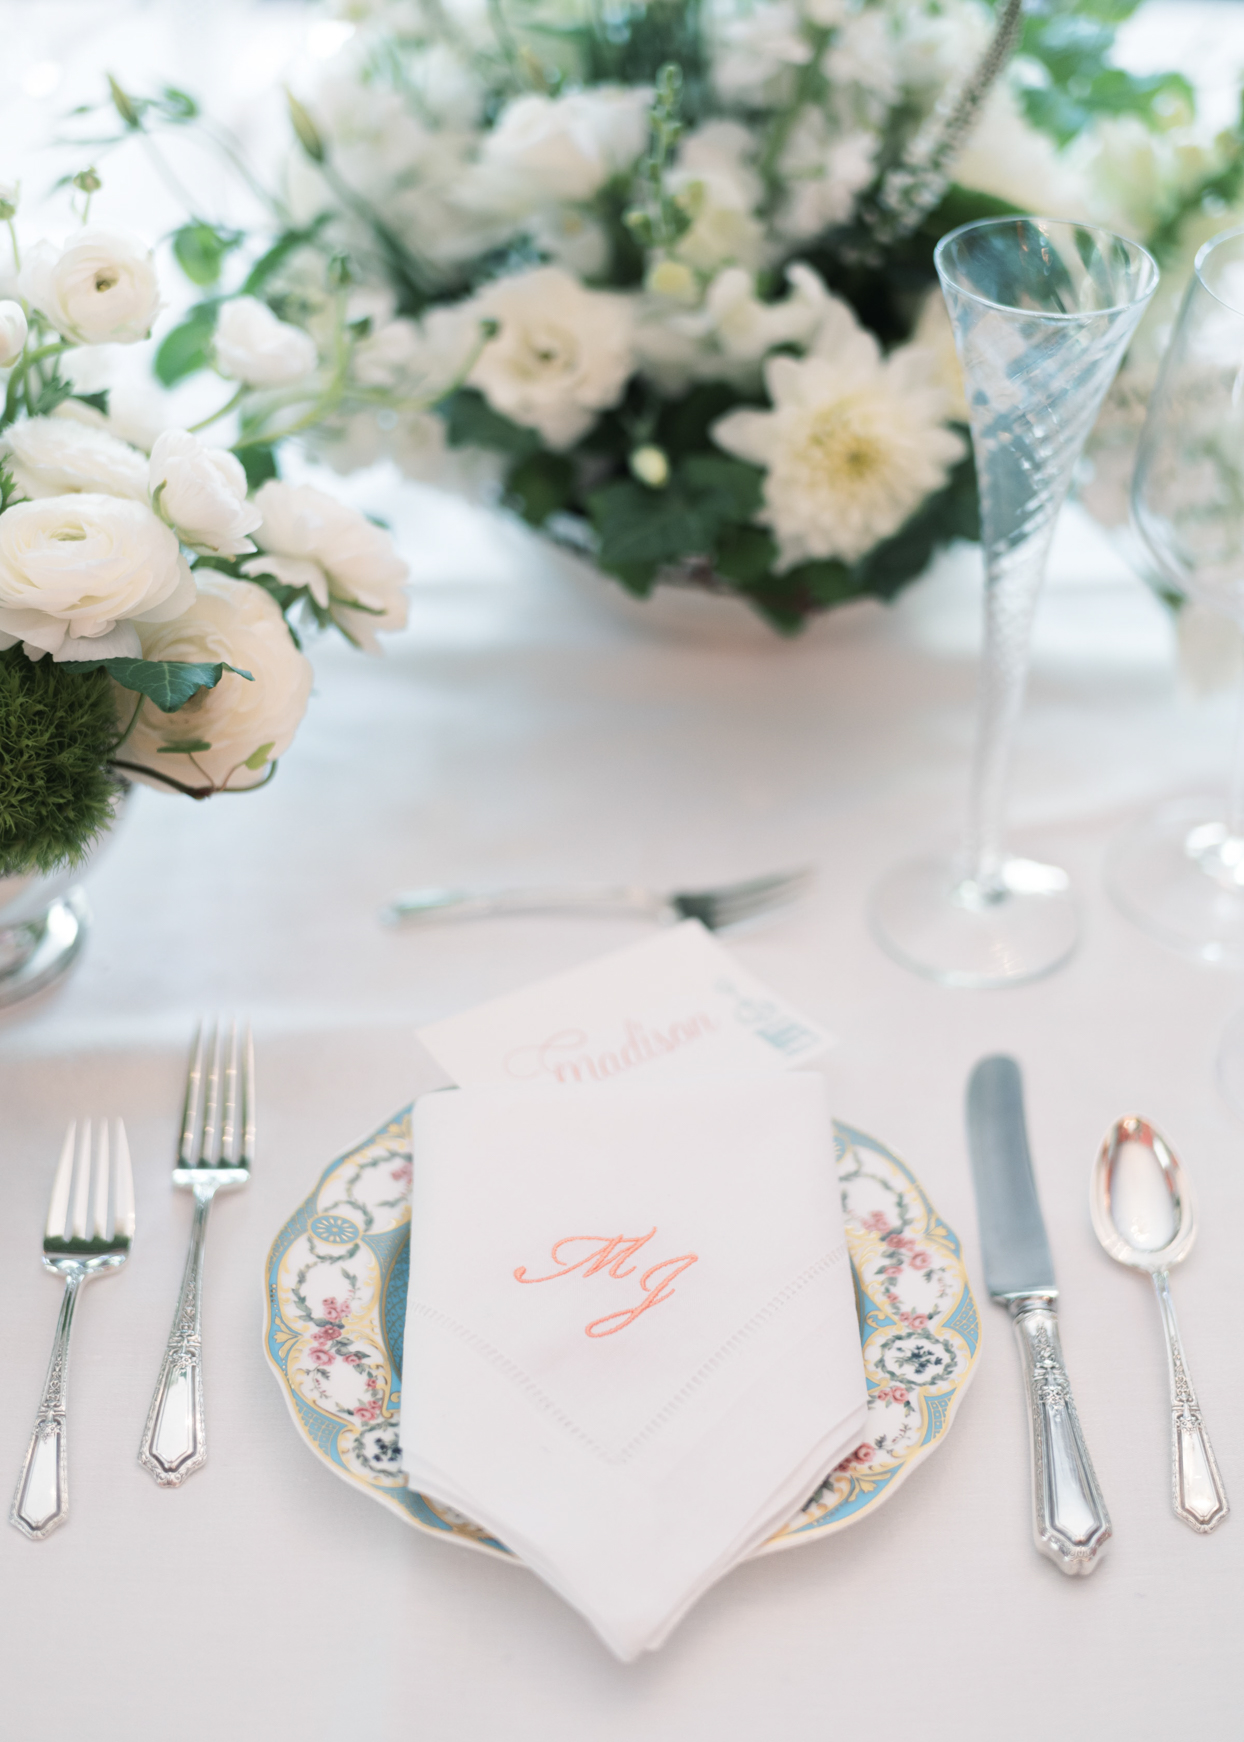 elegant wedding place setting with ornate plate and monogrammed napkin